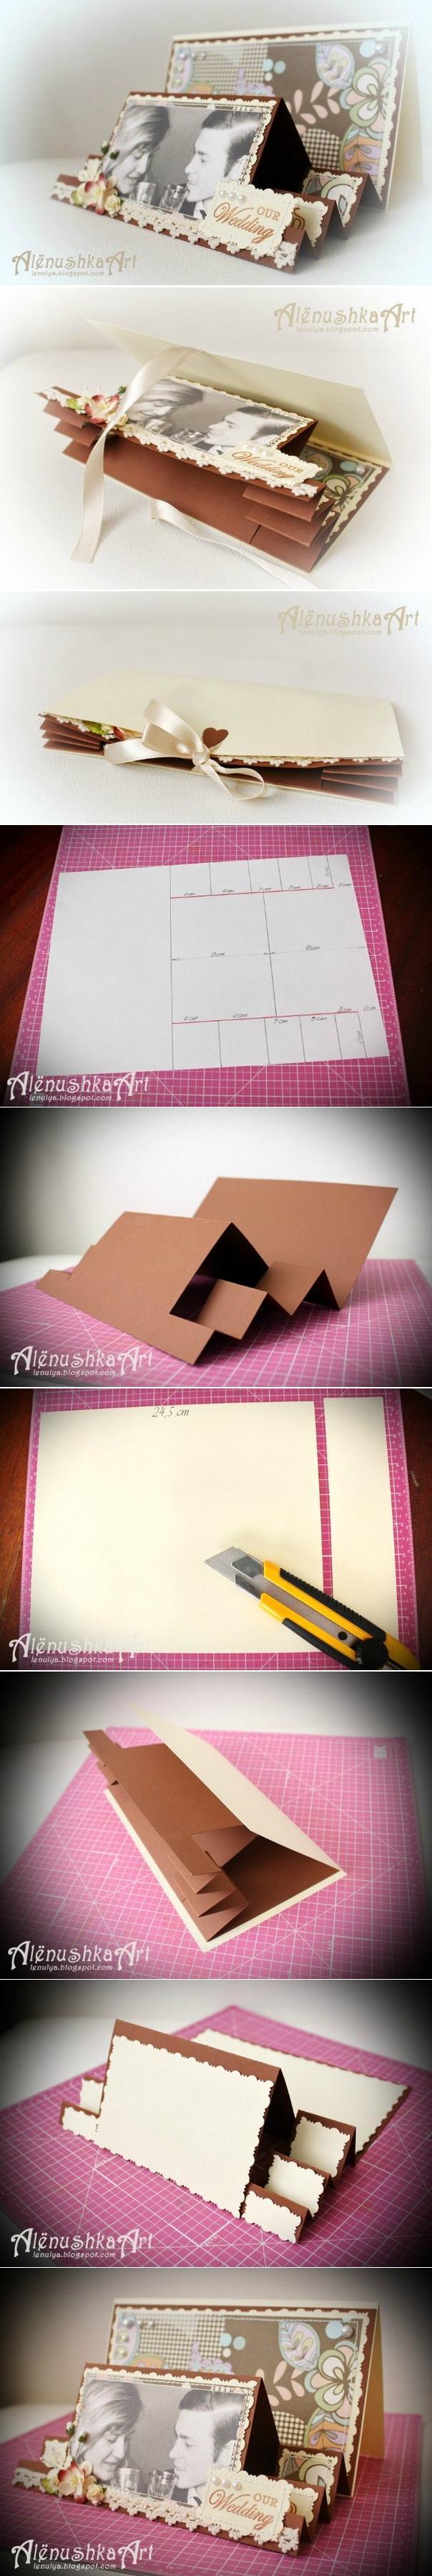 How To Make Wedding Pop Up Cards : How to make 3D Wedding Card step by step DIY tutorial ...